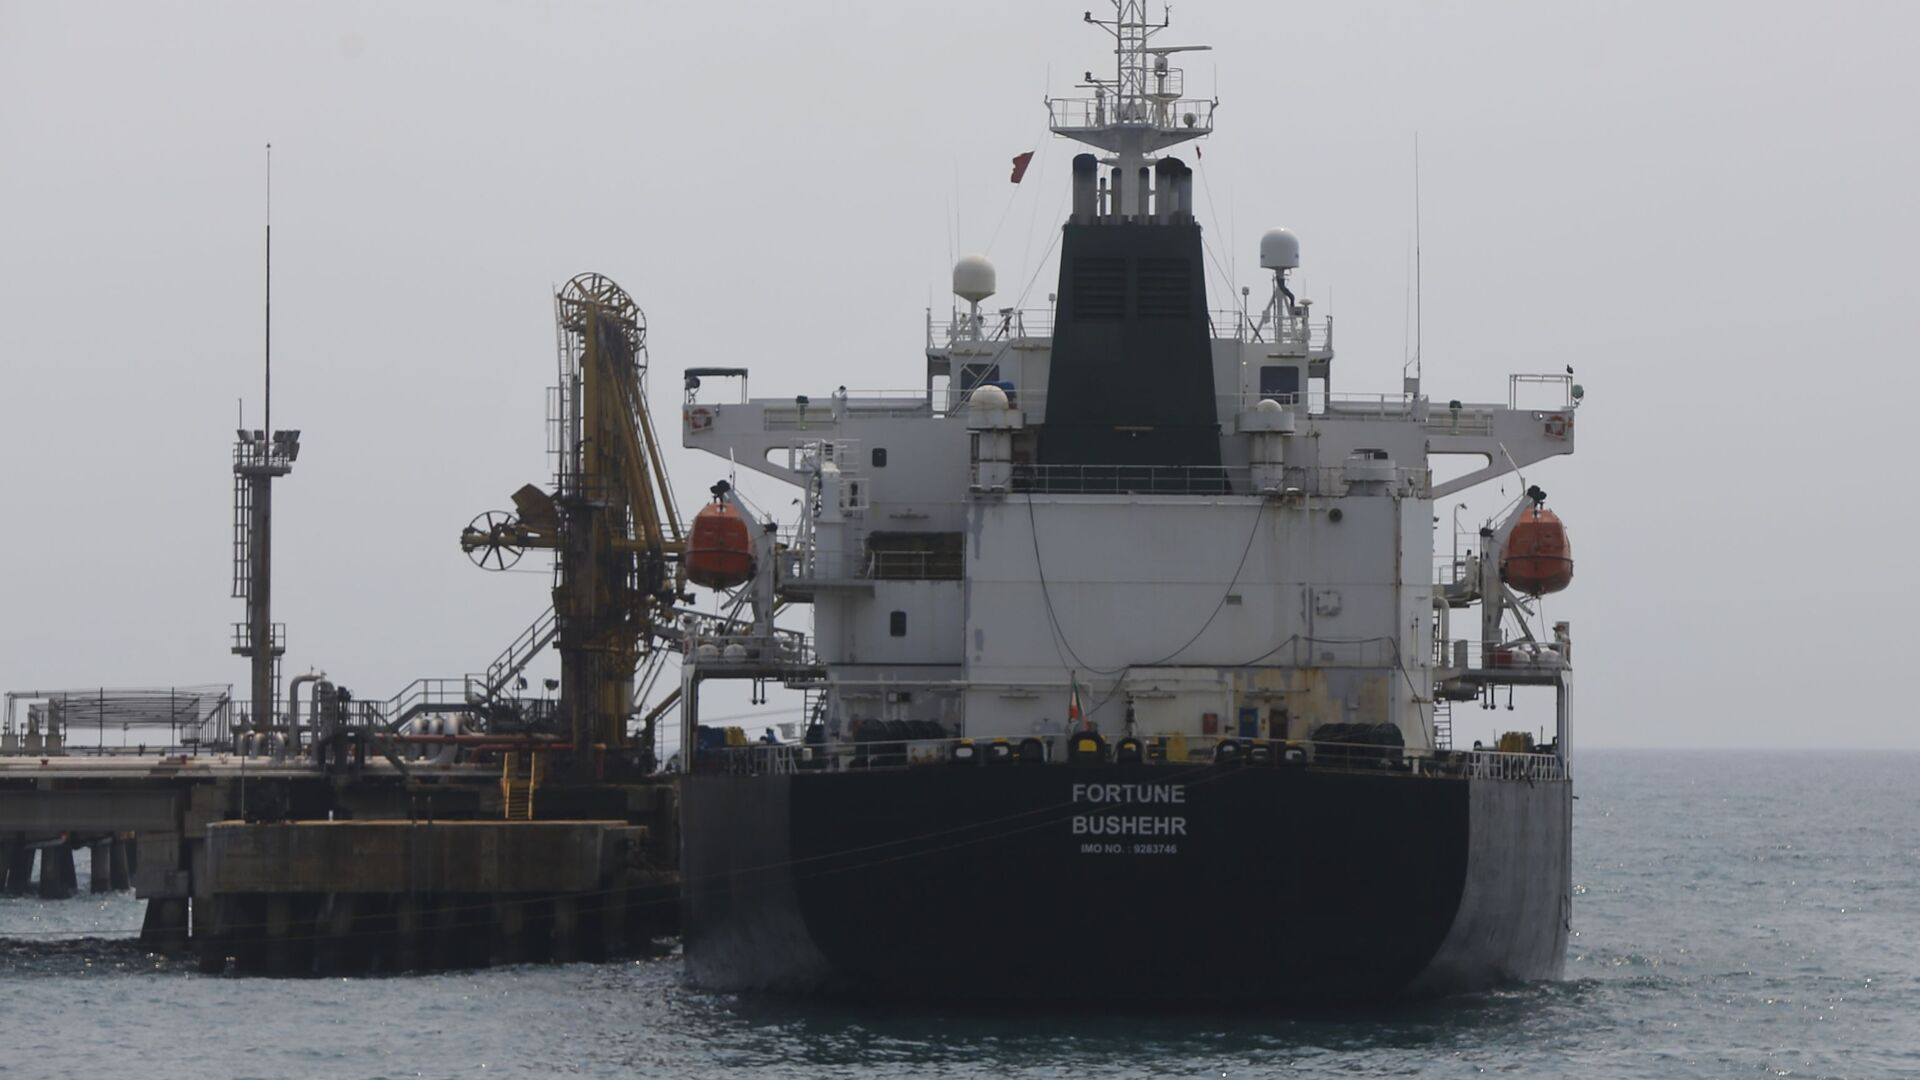 Iranian oil tanker Fortune is anchored at the dock of the El Palito refinery near Puerto Cabello, Venezuela, Monday, May 25, 2020 - Sputnik International, 1920, 13.08.2021